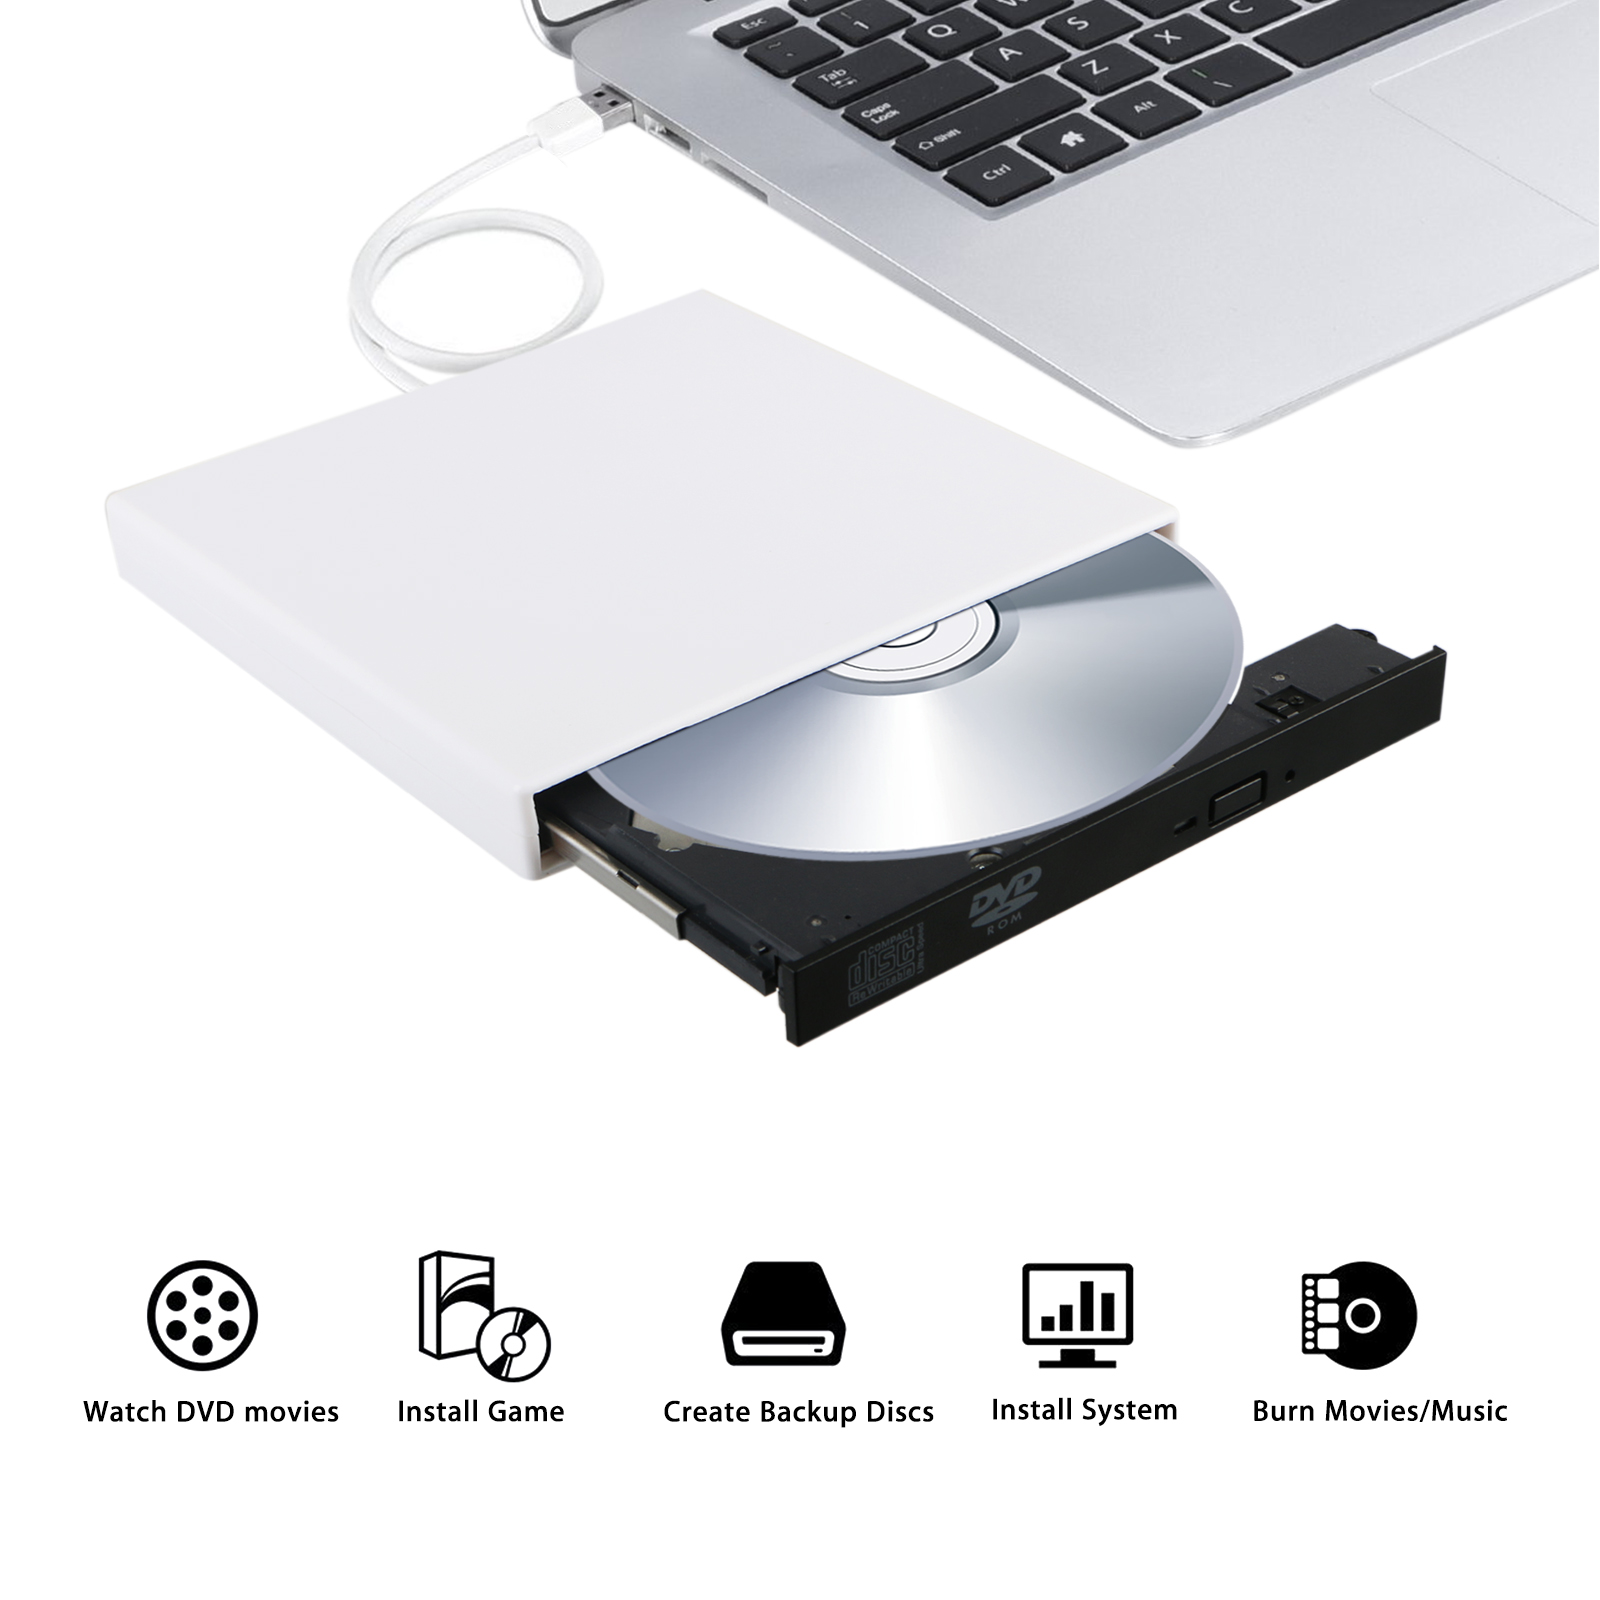 External USB 2.0 DVD RW CD Writer Slim Drive Burner Reader Player for PC Laptop